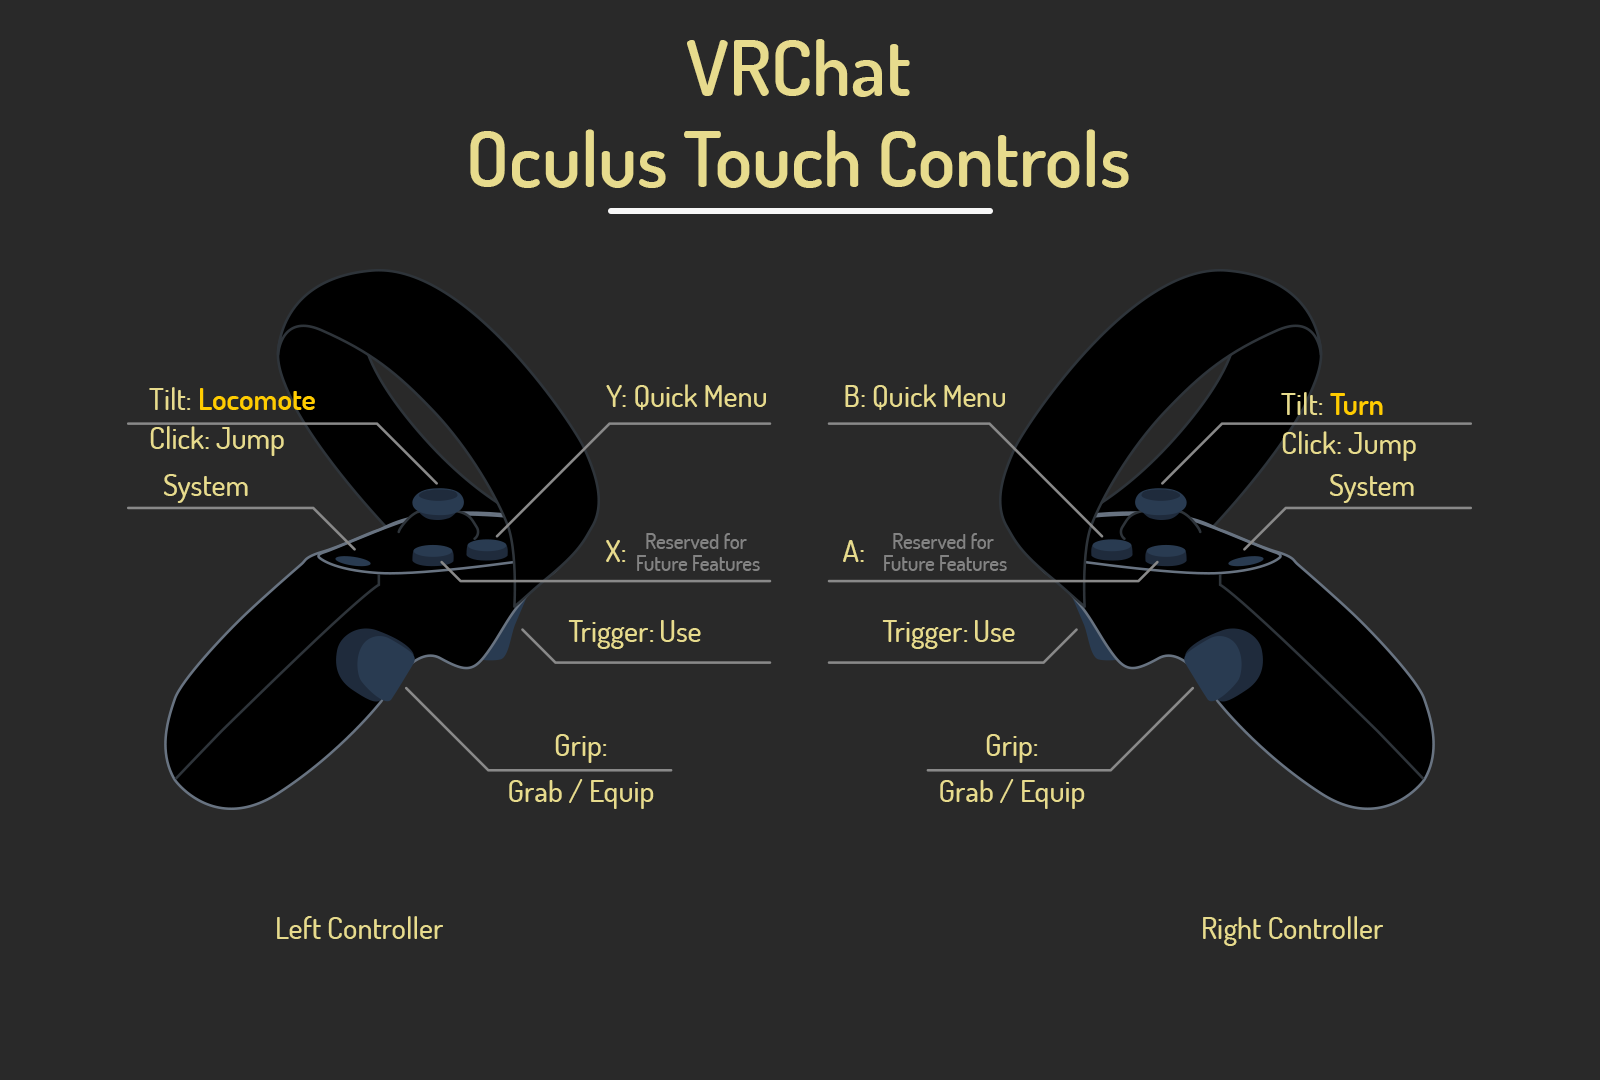 Although the form factor differs between Oculus Touch for Rift and Rift S/Quest, the button positions and bindings are essentially identical.